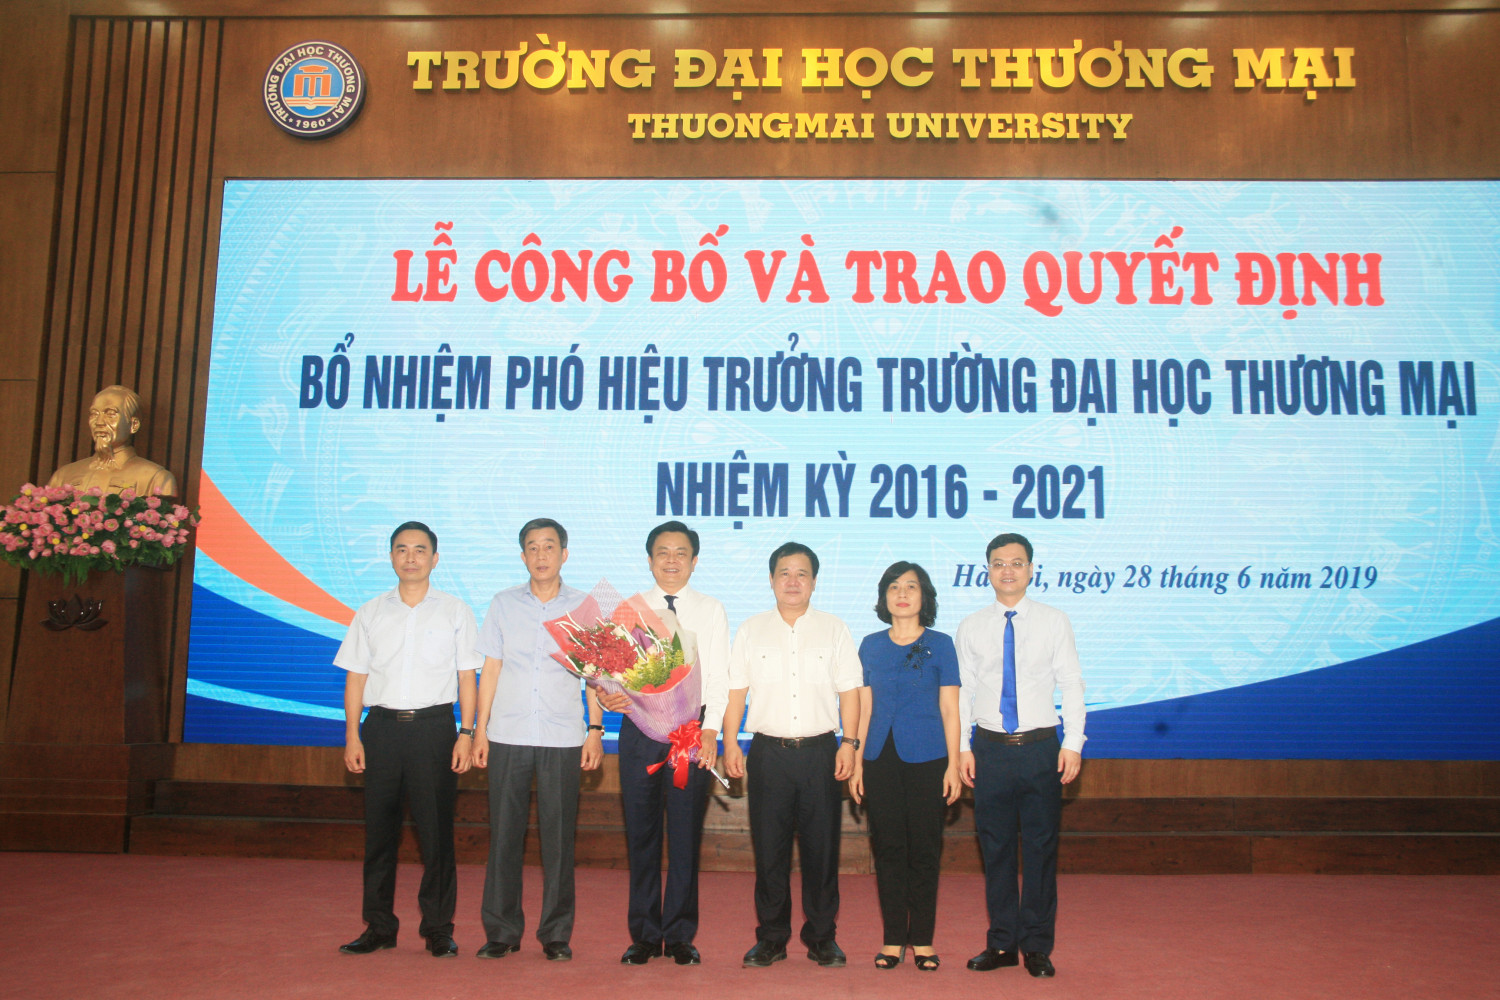 Representatives of Ministry of Education and Training and University leaders giving flowers to A/Prof. Dr. Nguyen Hoang